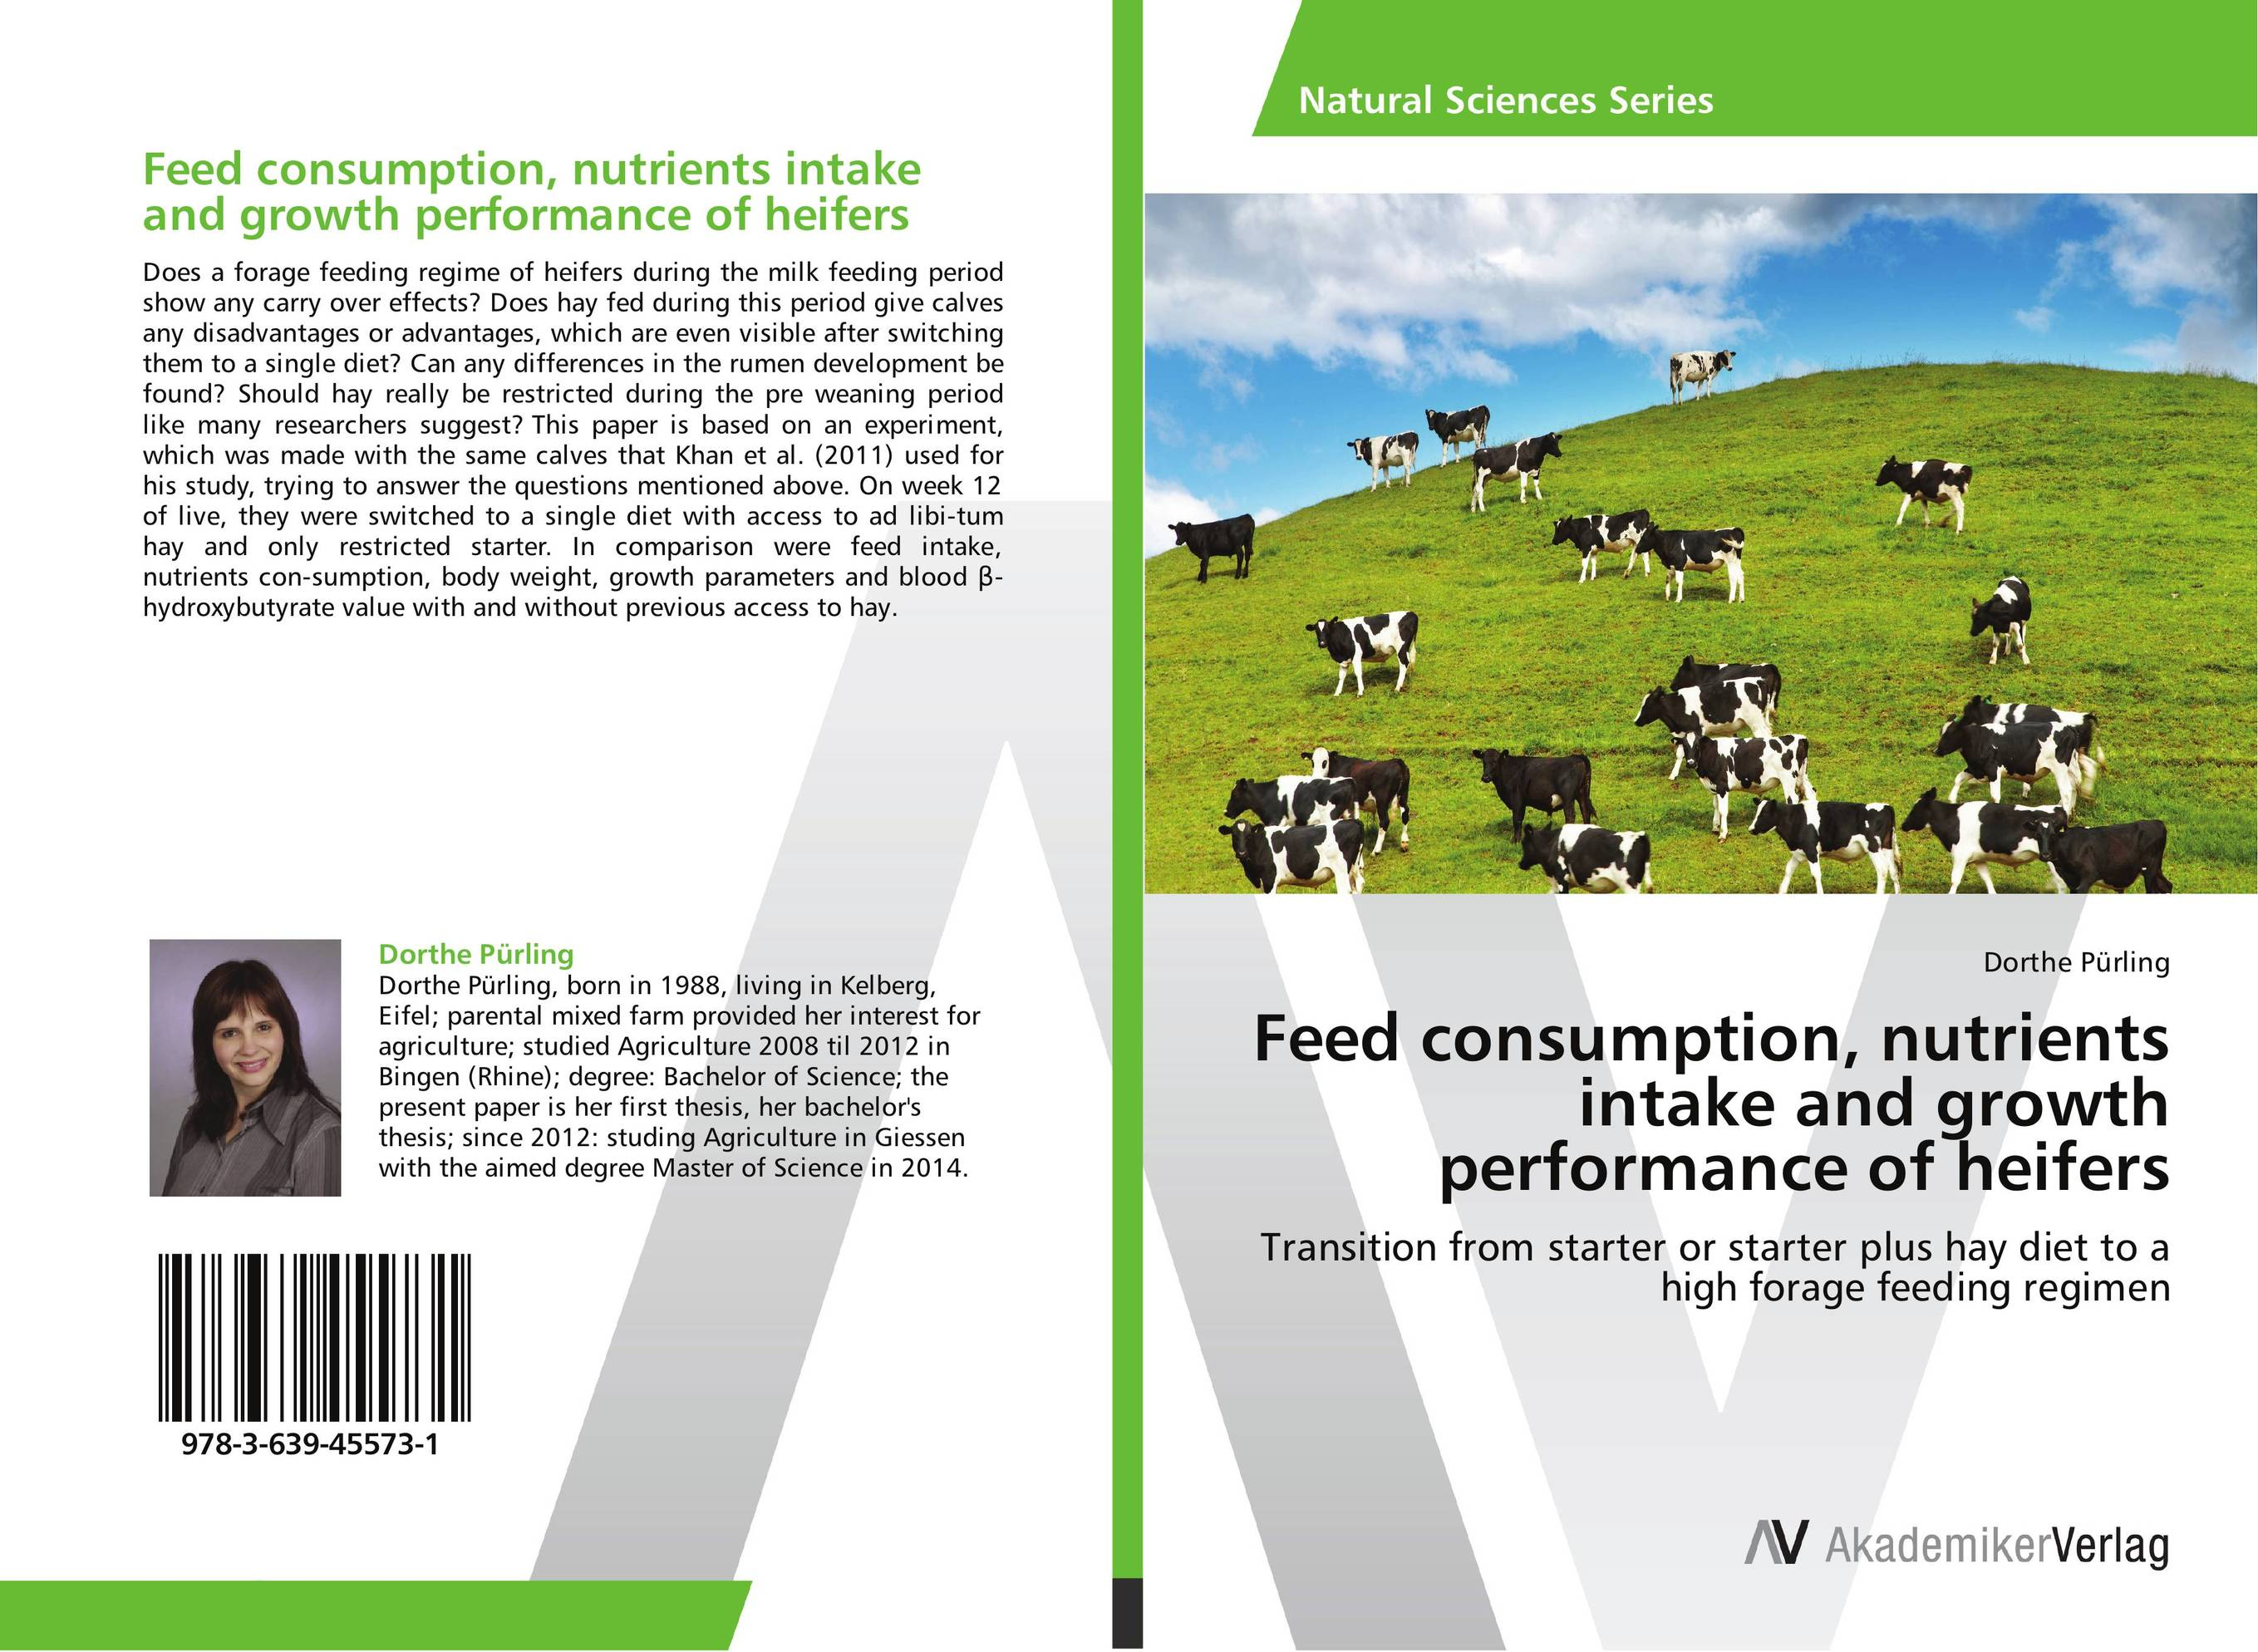 Feed consumption, nutrients intake and growth performance of heifers psychiatric disorders in postpartum period